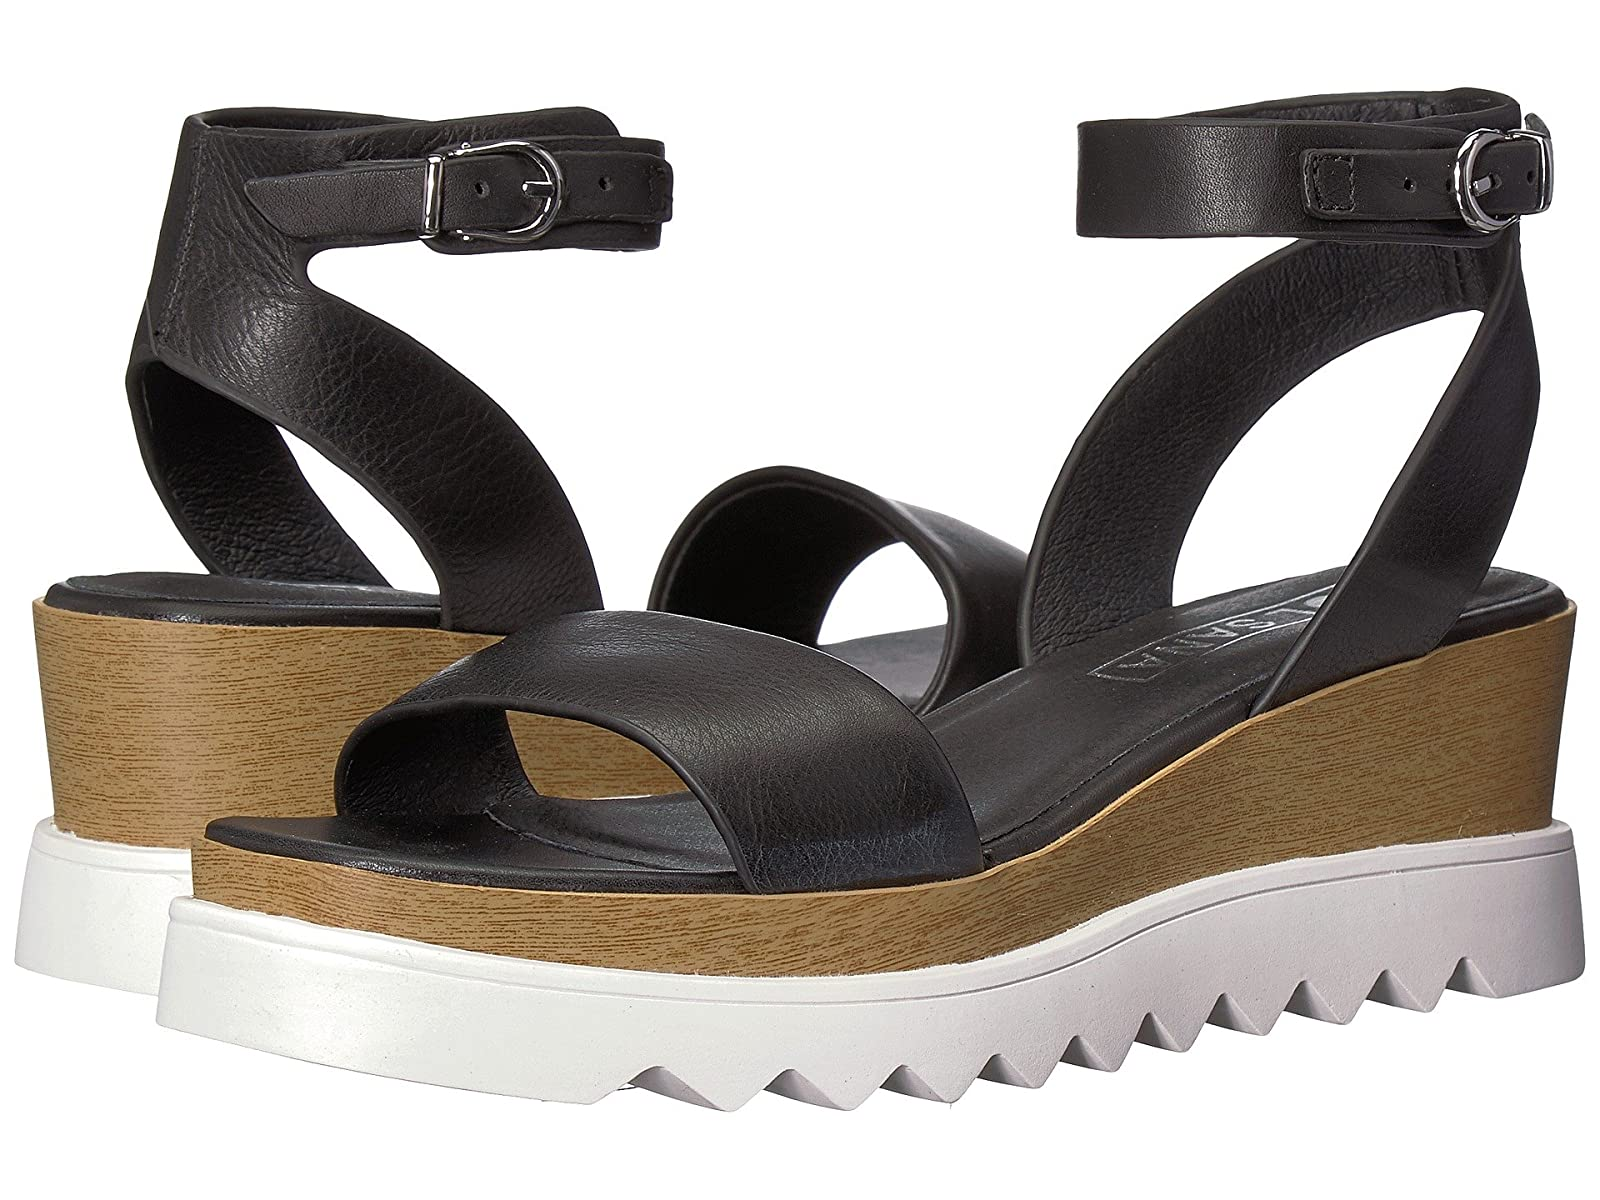 Sol Sana Tray Wedge SandalAtmospheric grades have affordable shoes